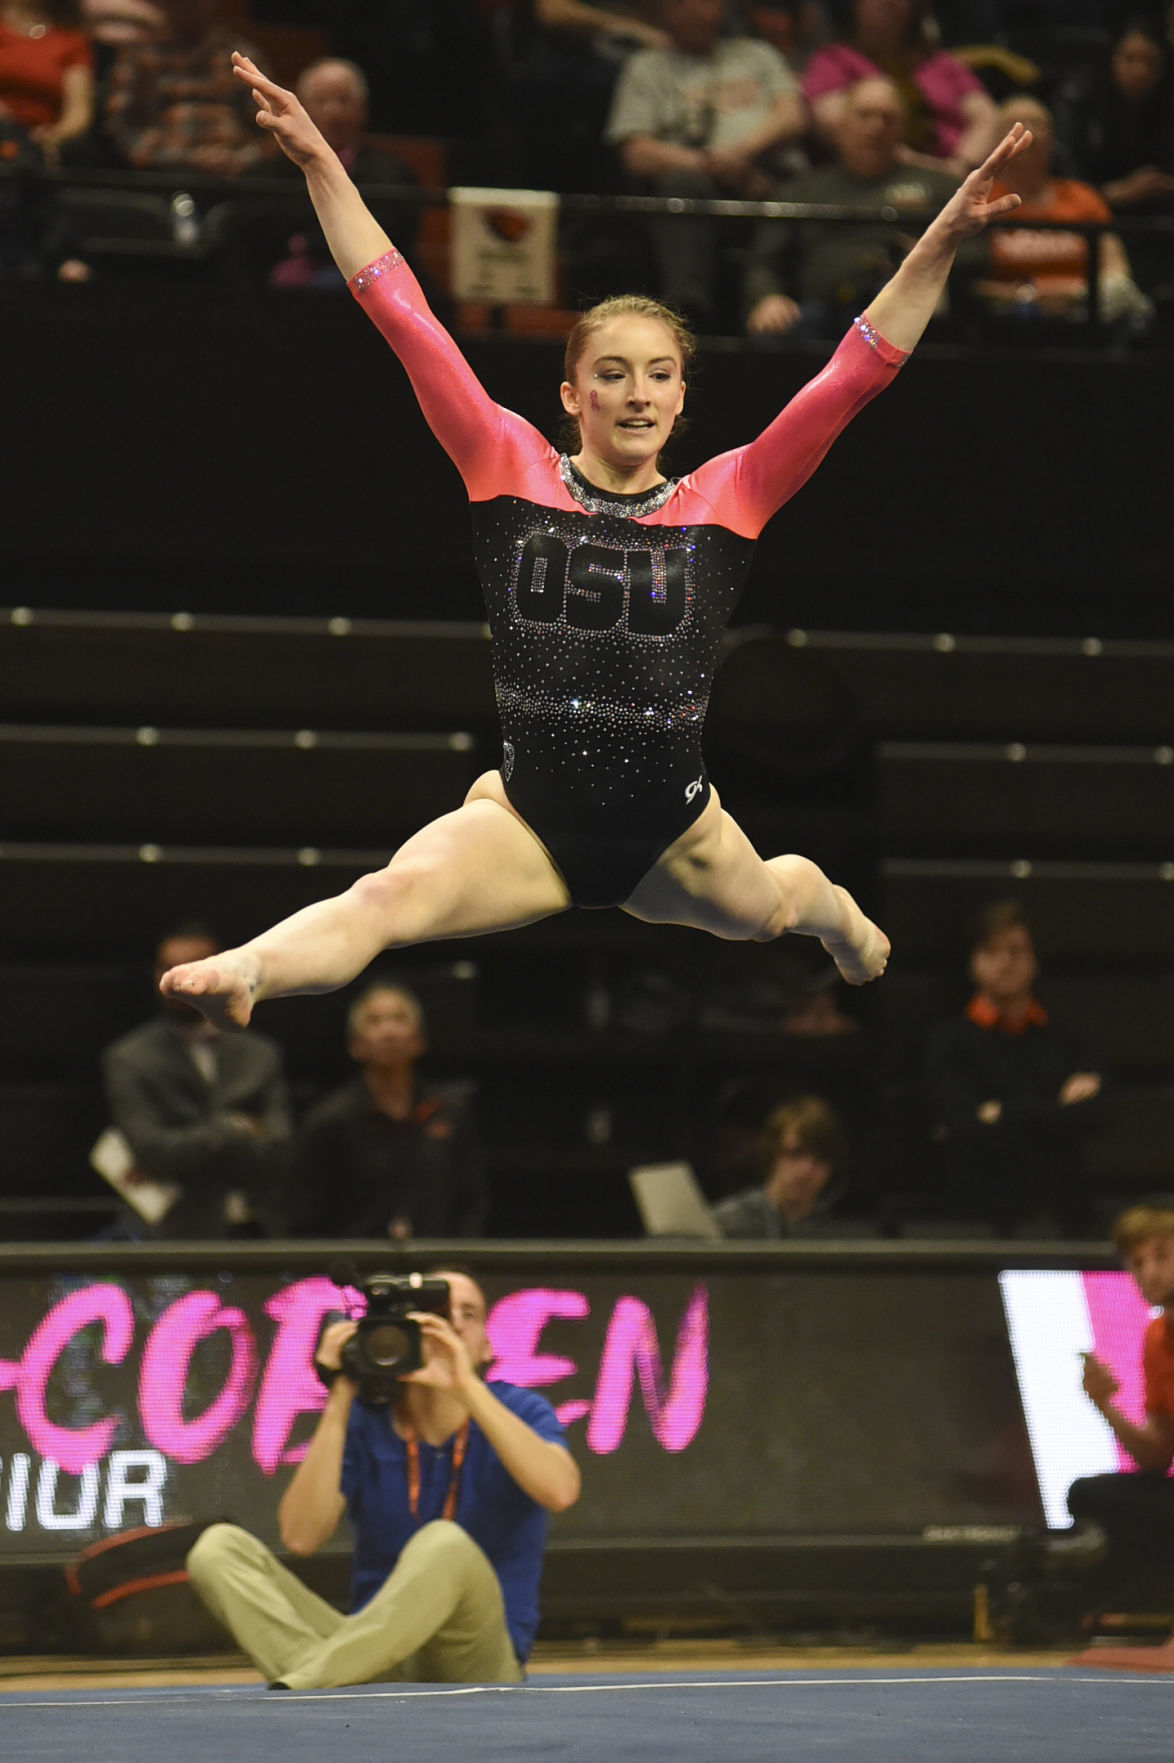 Oregon State vs. California Gymnastics